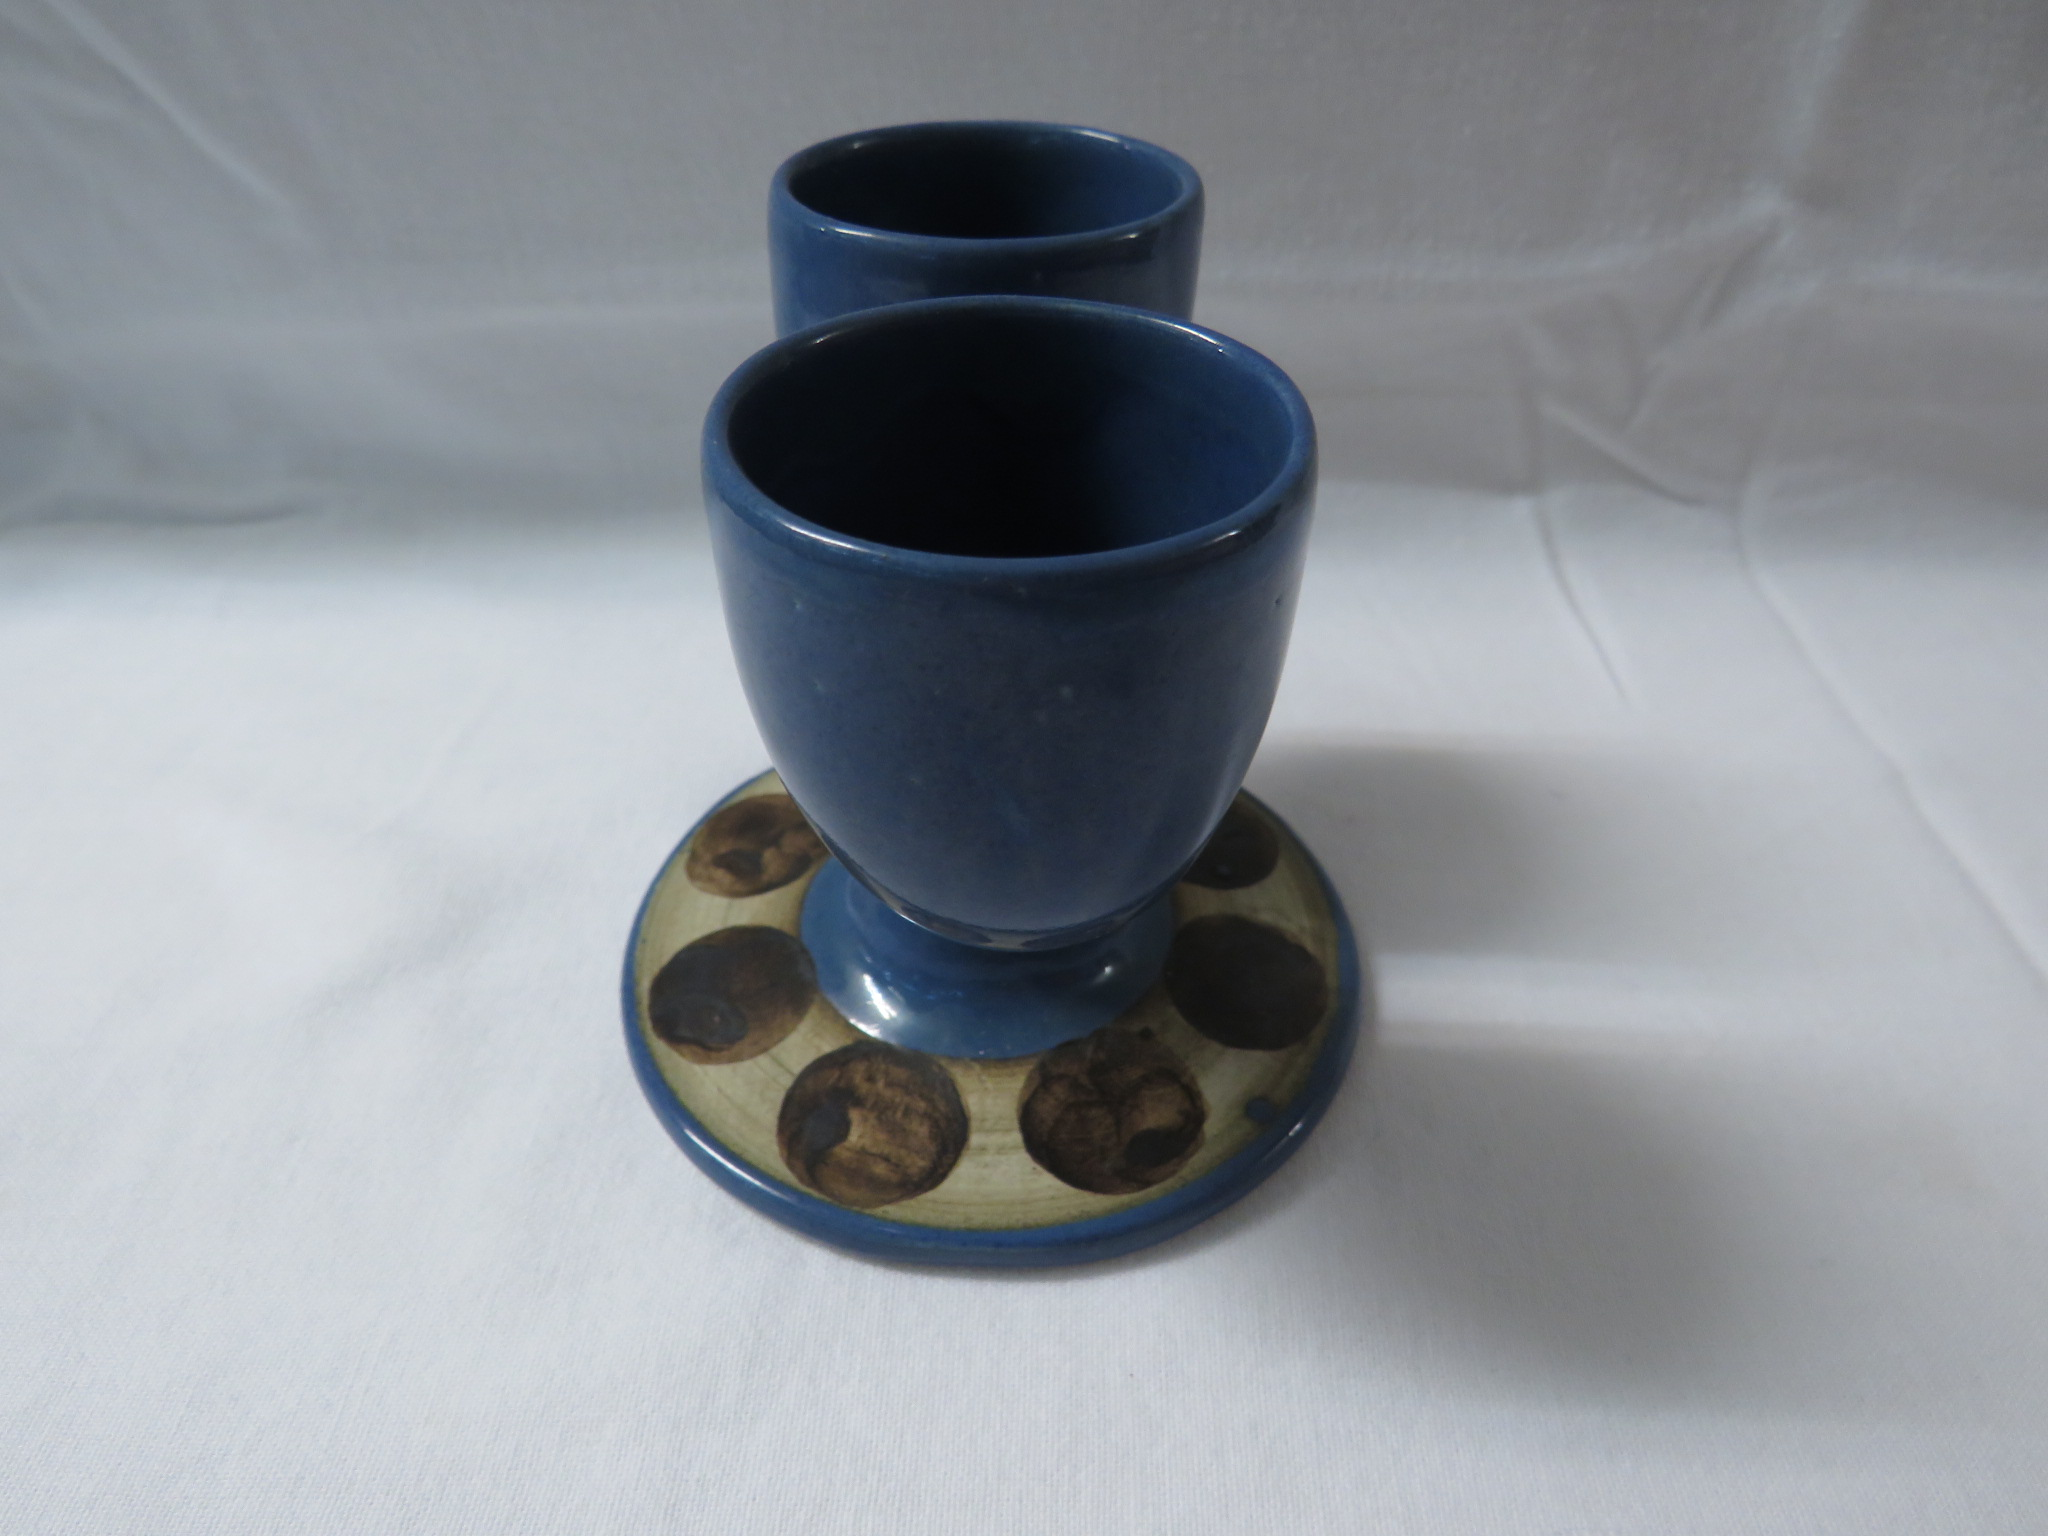 Lot 13 - Troika pottery double egg cup, blue glaze, the circular foot in fawn with painted brown discs, the